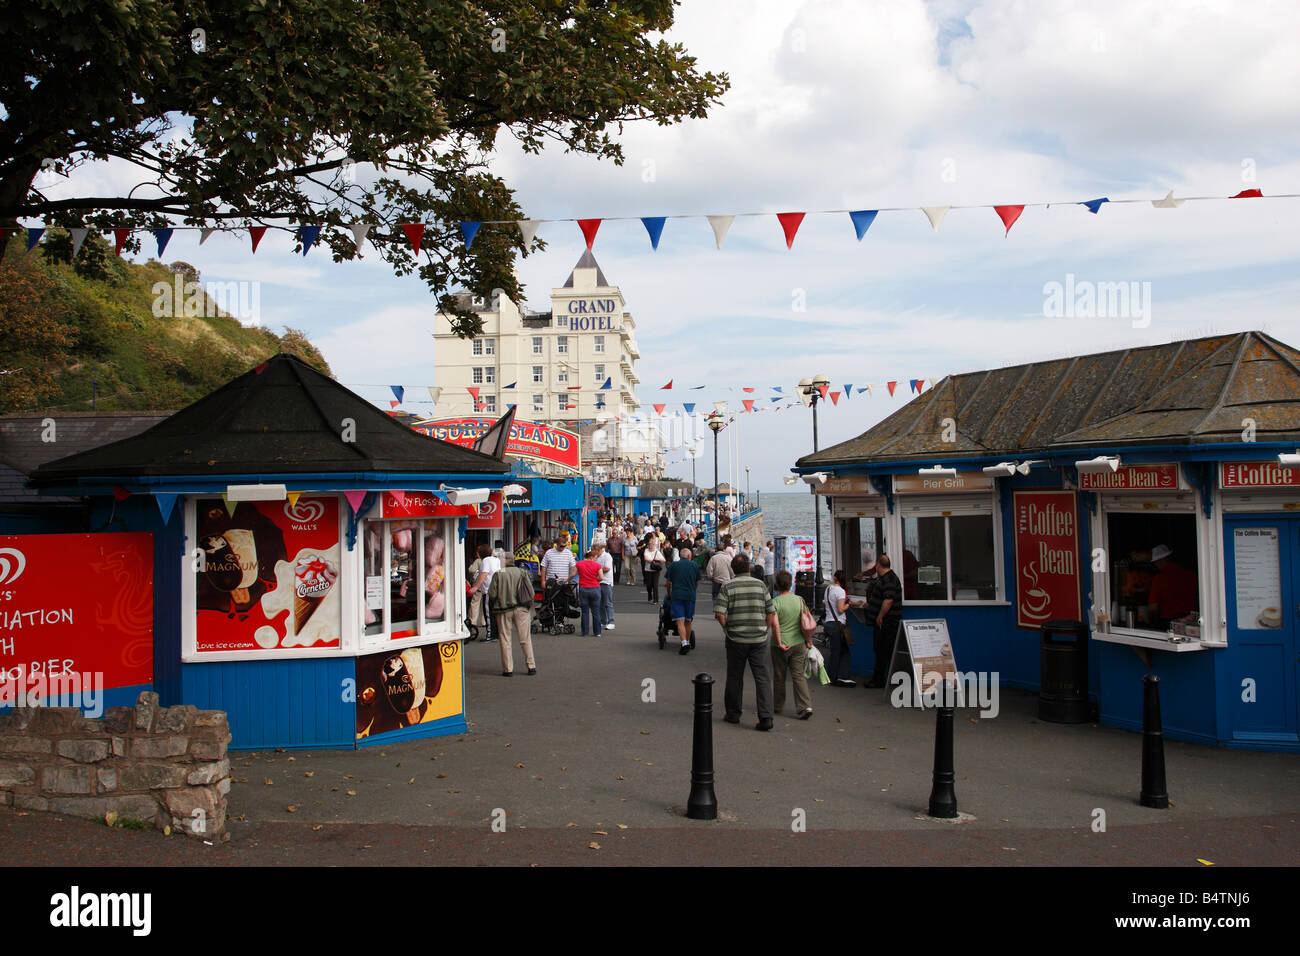 entrance to the pier built in 1878 a grade 2 listed building north shore llandudno conway clwyd north wales uk - Stock Image